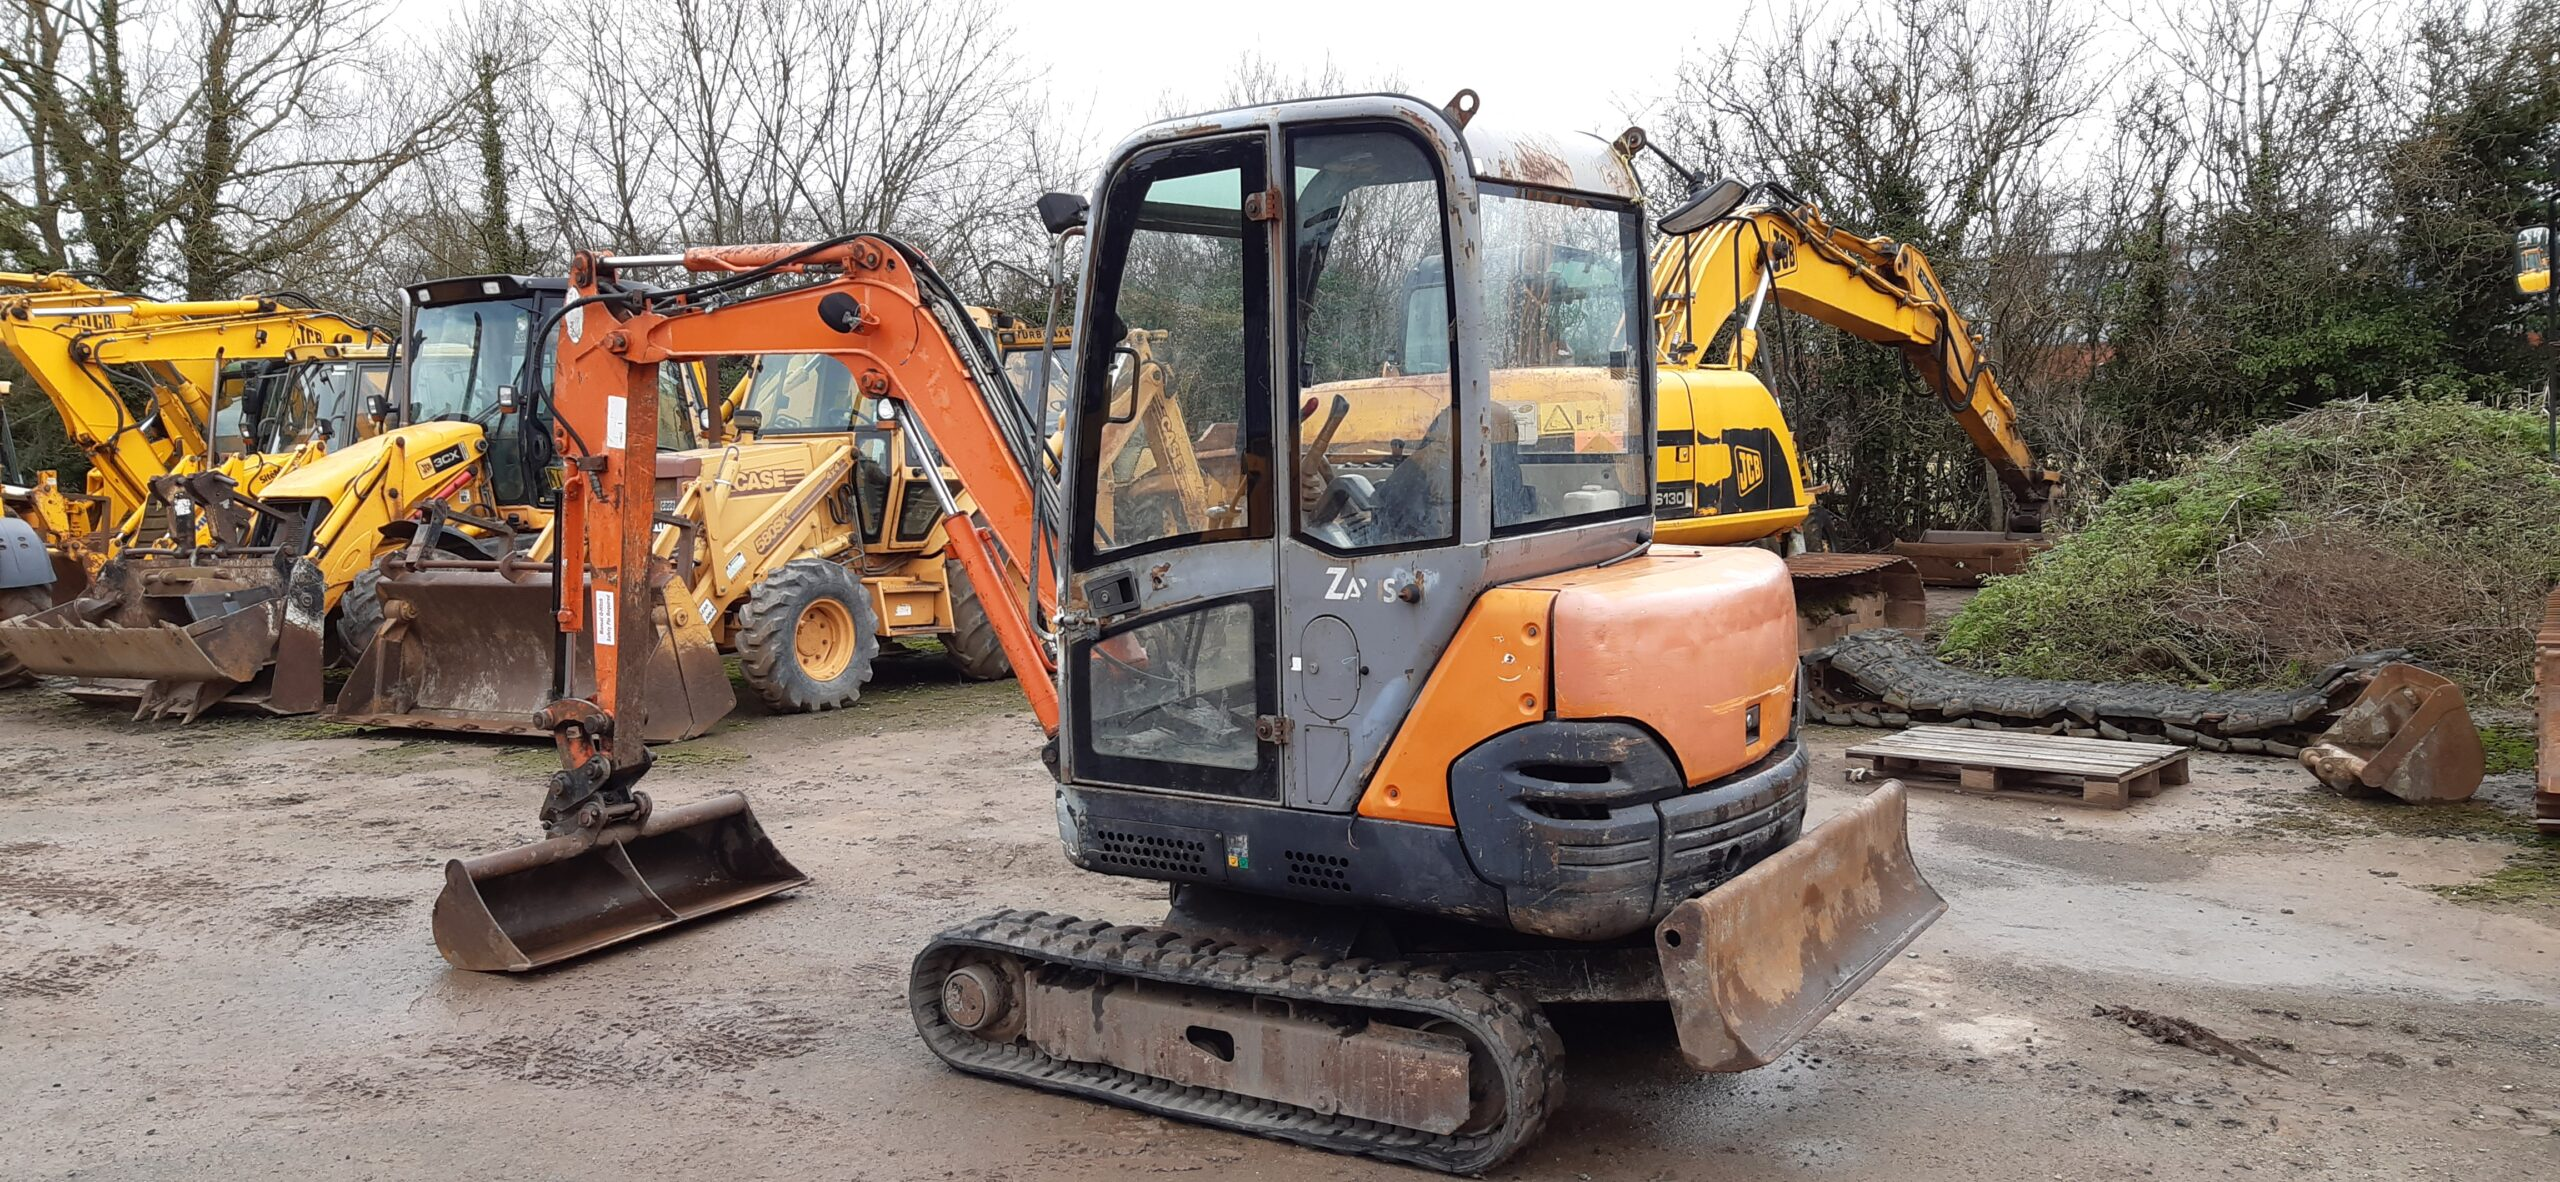 2007 Hitachi ZX25CLR,Manual Quick hitch,Good rubber tracks,4700 hours Image